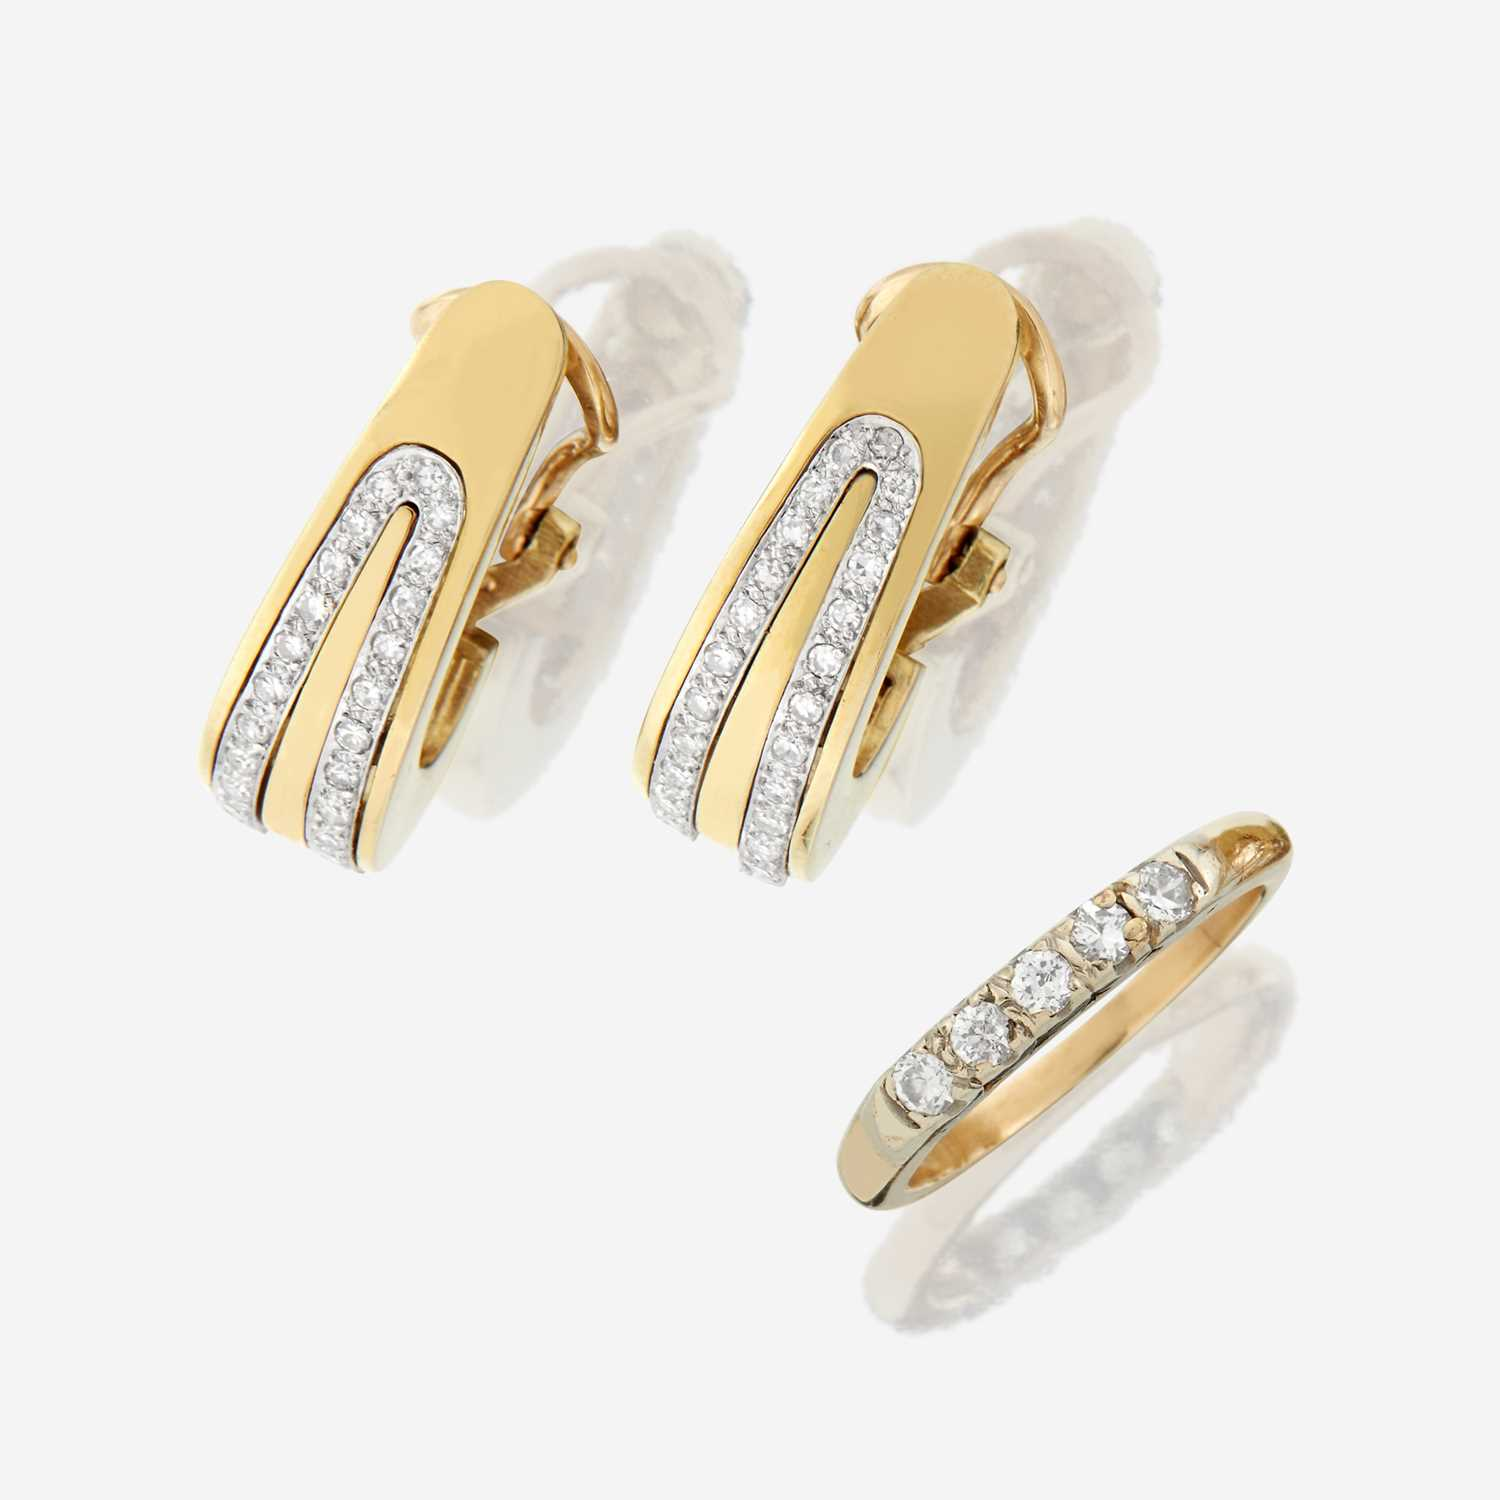 Lot 46 - A pair of fourteen karat gold and diamond earrings with similar ring